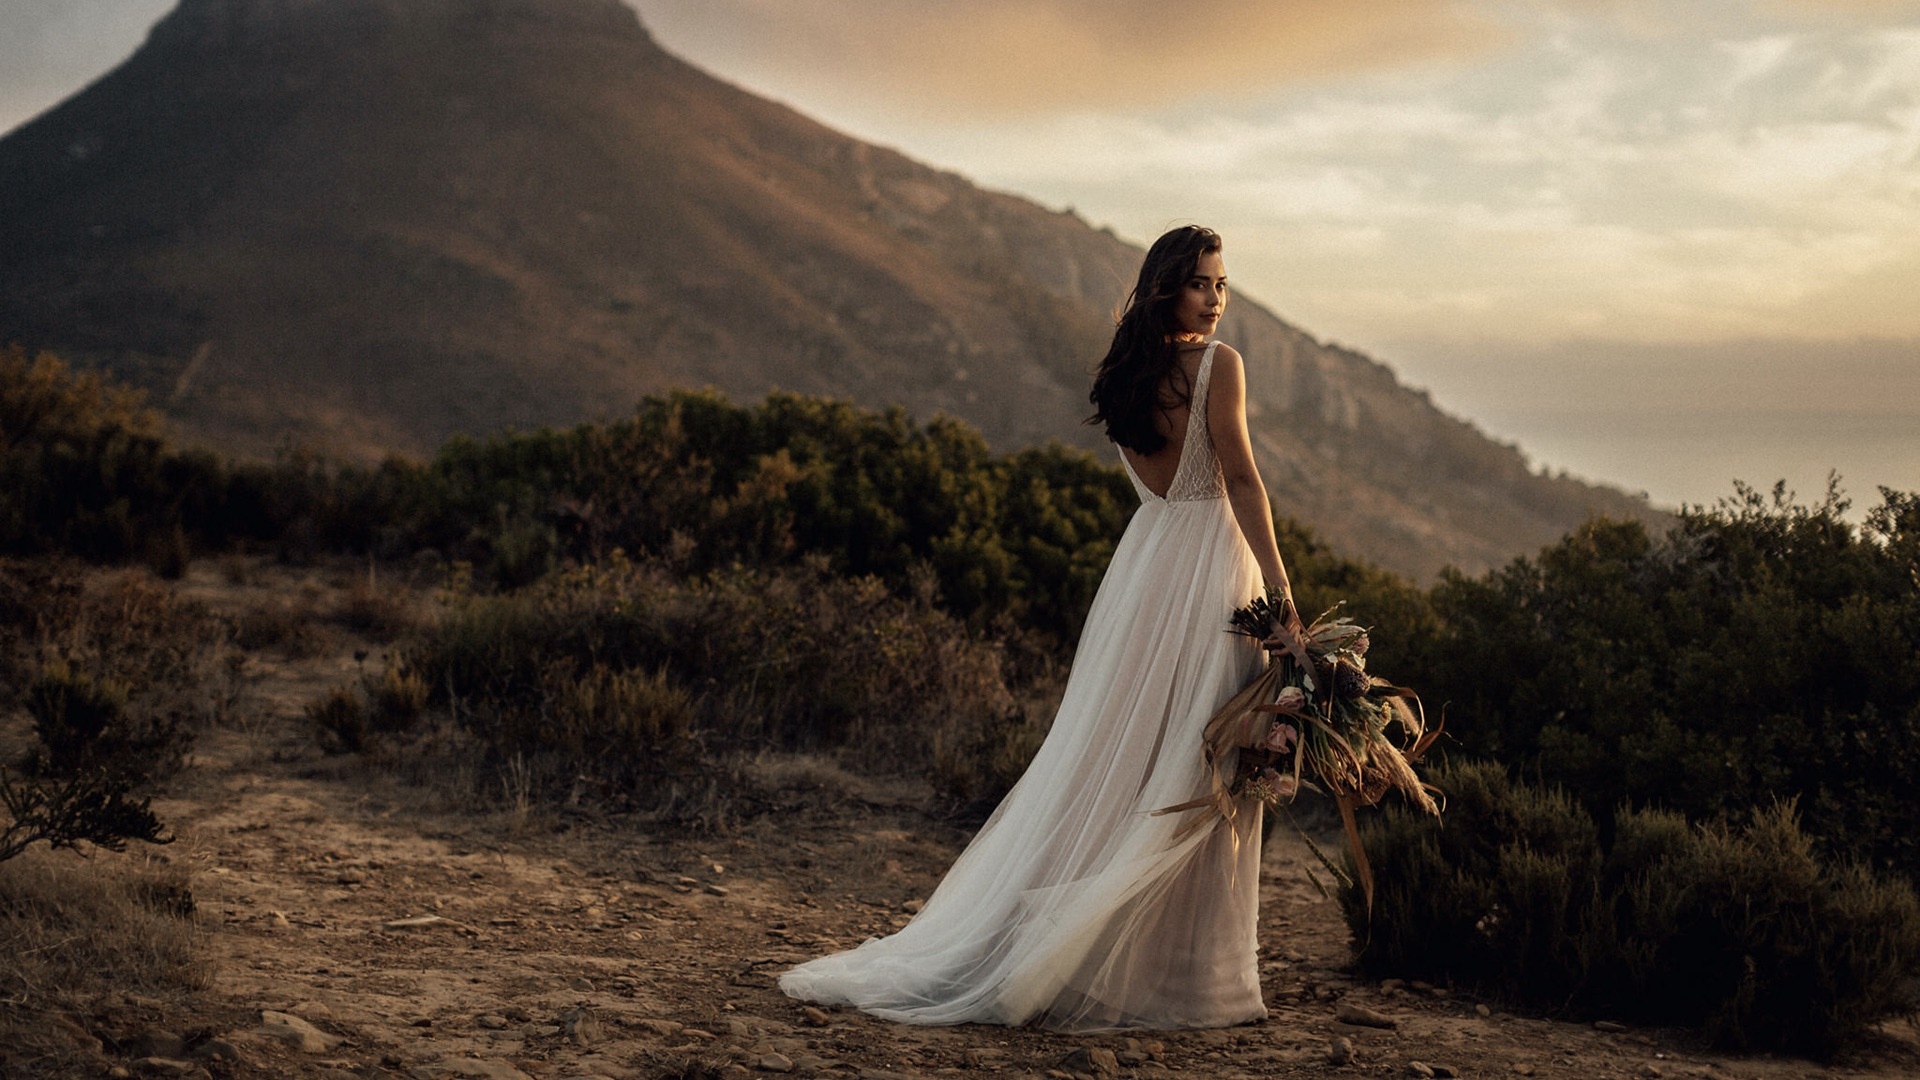 12 wedding photographers to follow on 500px